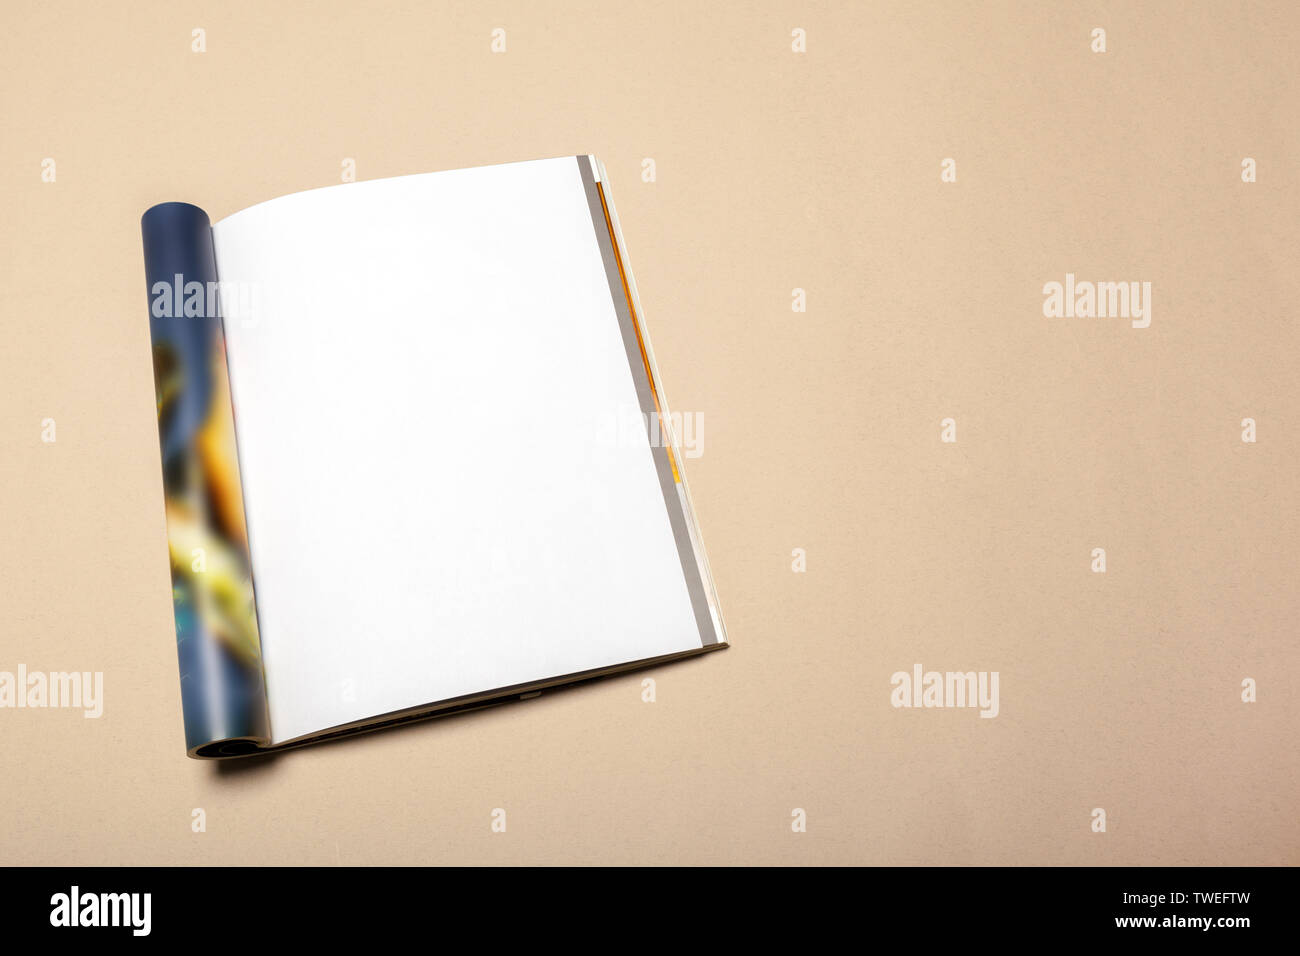 Blank paper pieces for mock up on a beige background - Stock Image